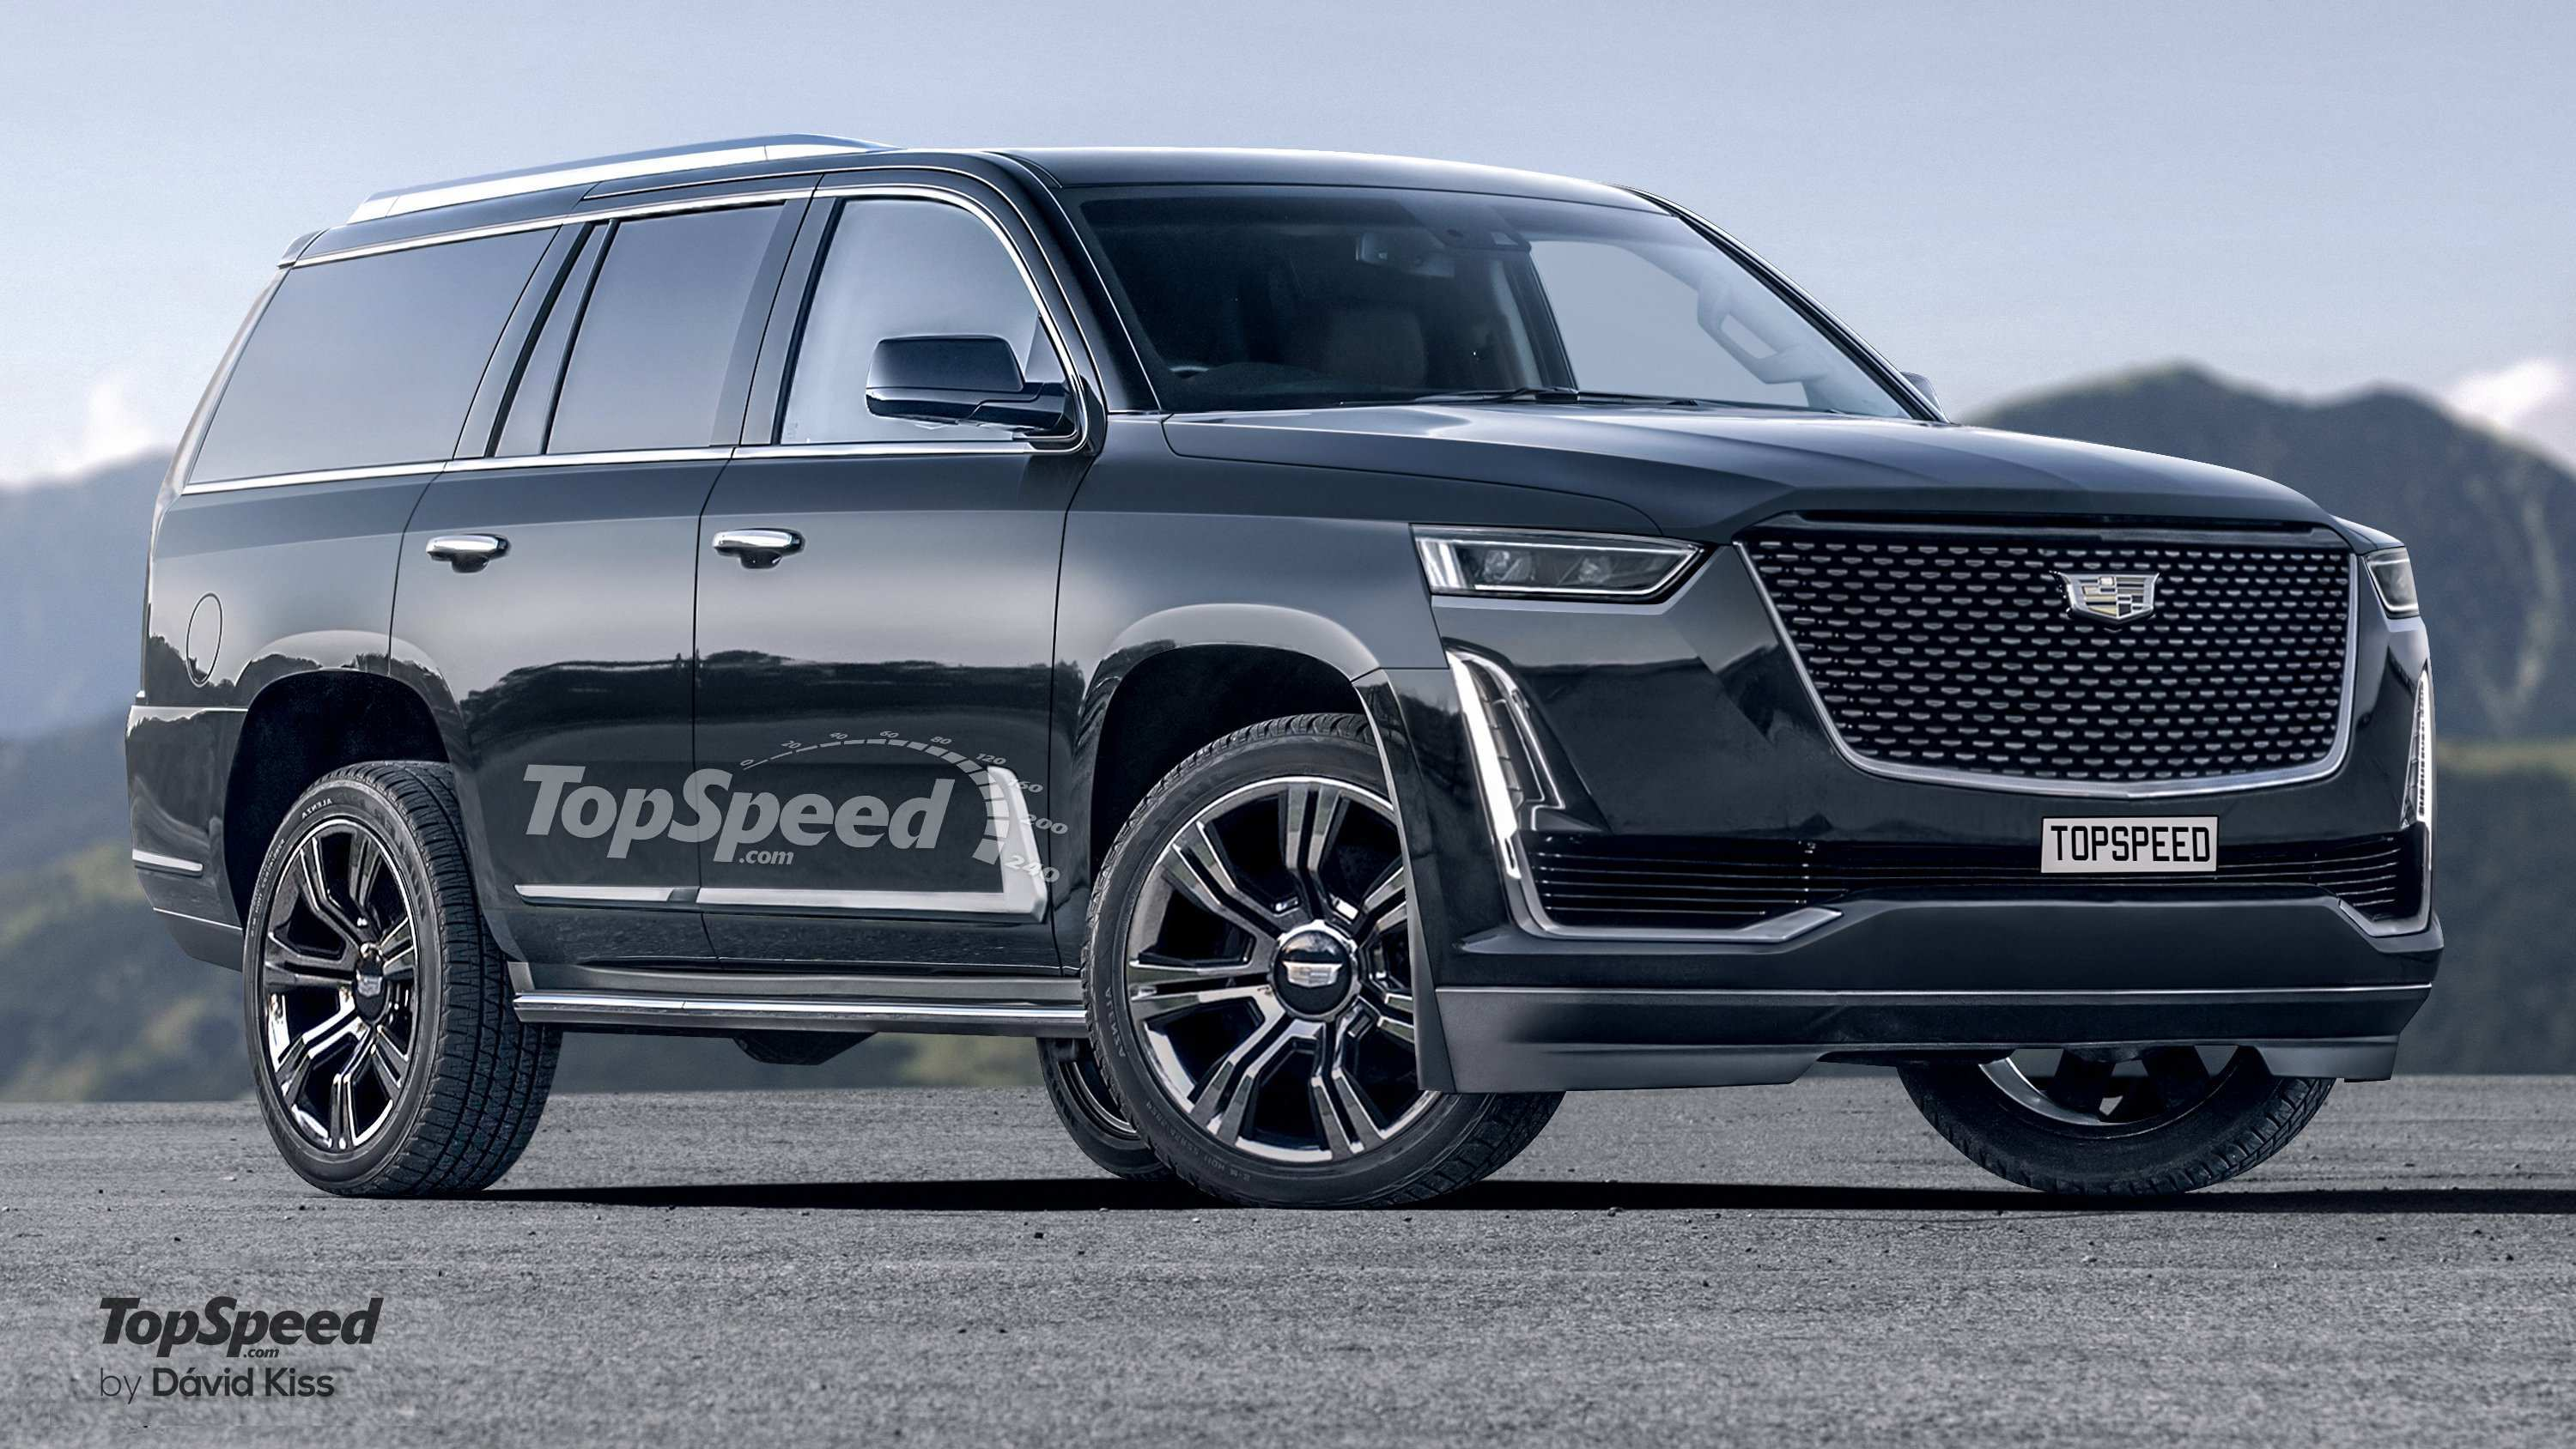 79 Gallery of Cadillac Pickup Truck 2020 Style for Cadillac Pickup Truck 2020